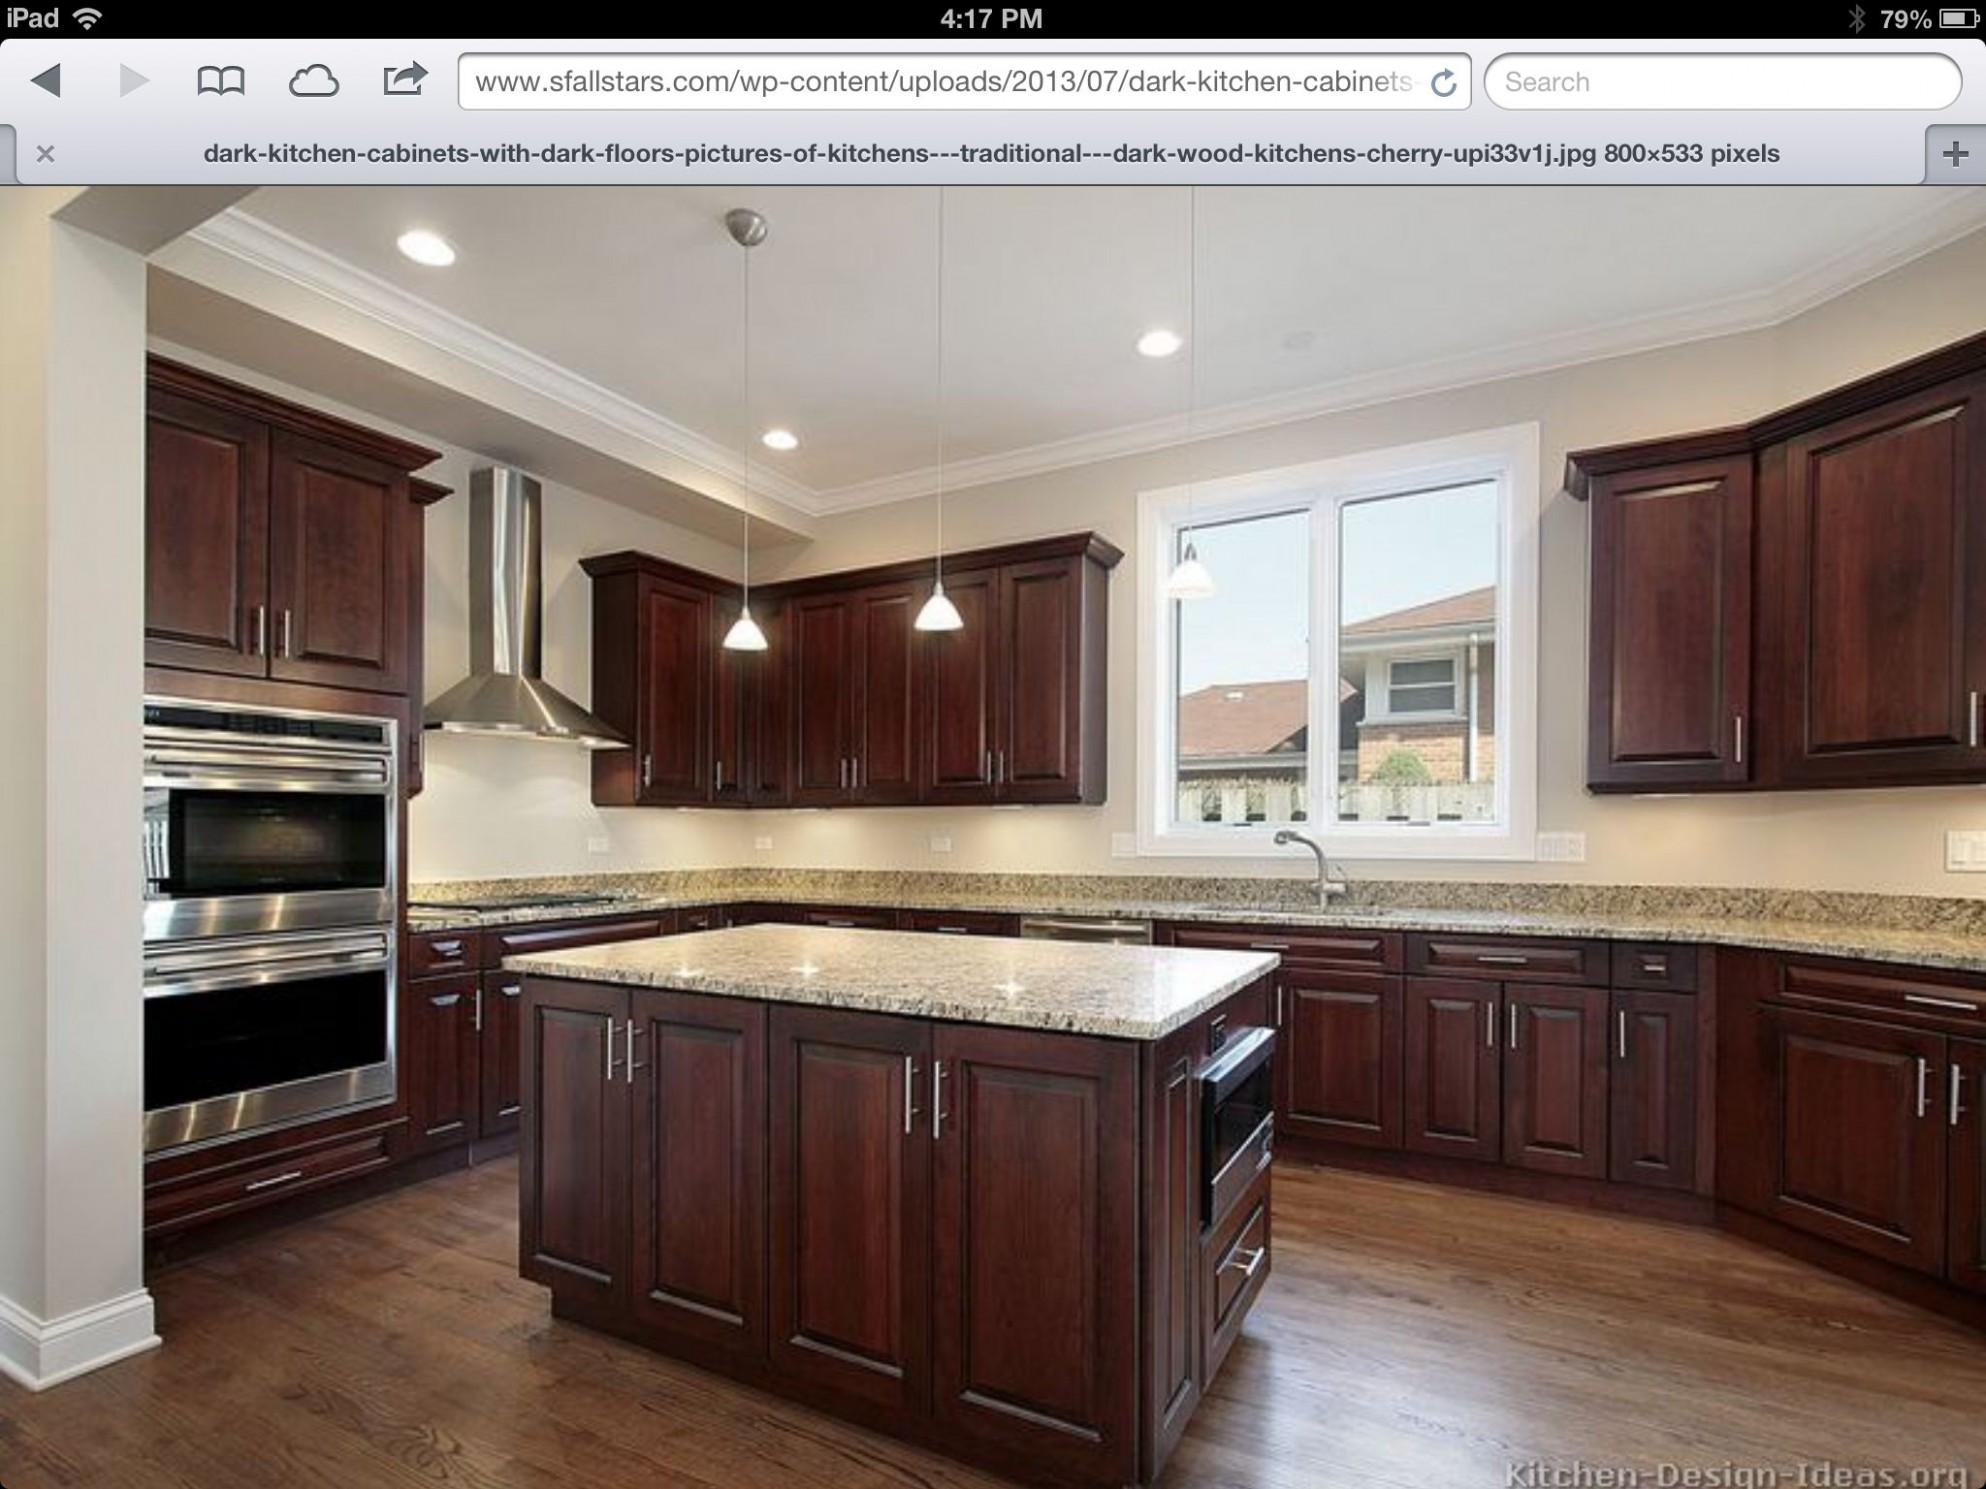 Pin by Jill Magda on House  Kitchen cabinets and flooring, Cherry  - What Color Kitchen Cabinets With Dark Hardwood Floors